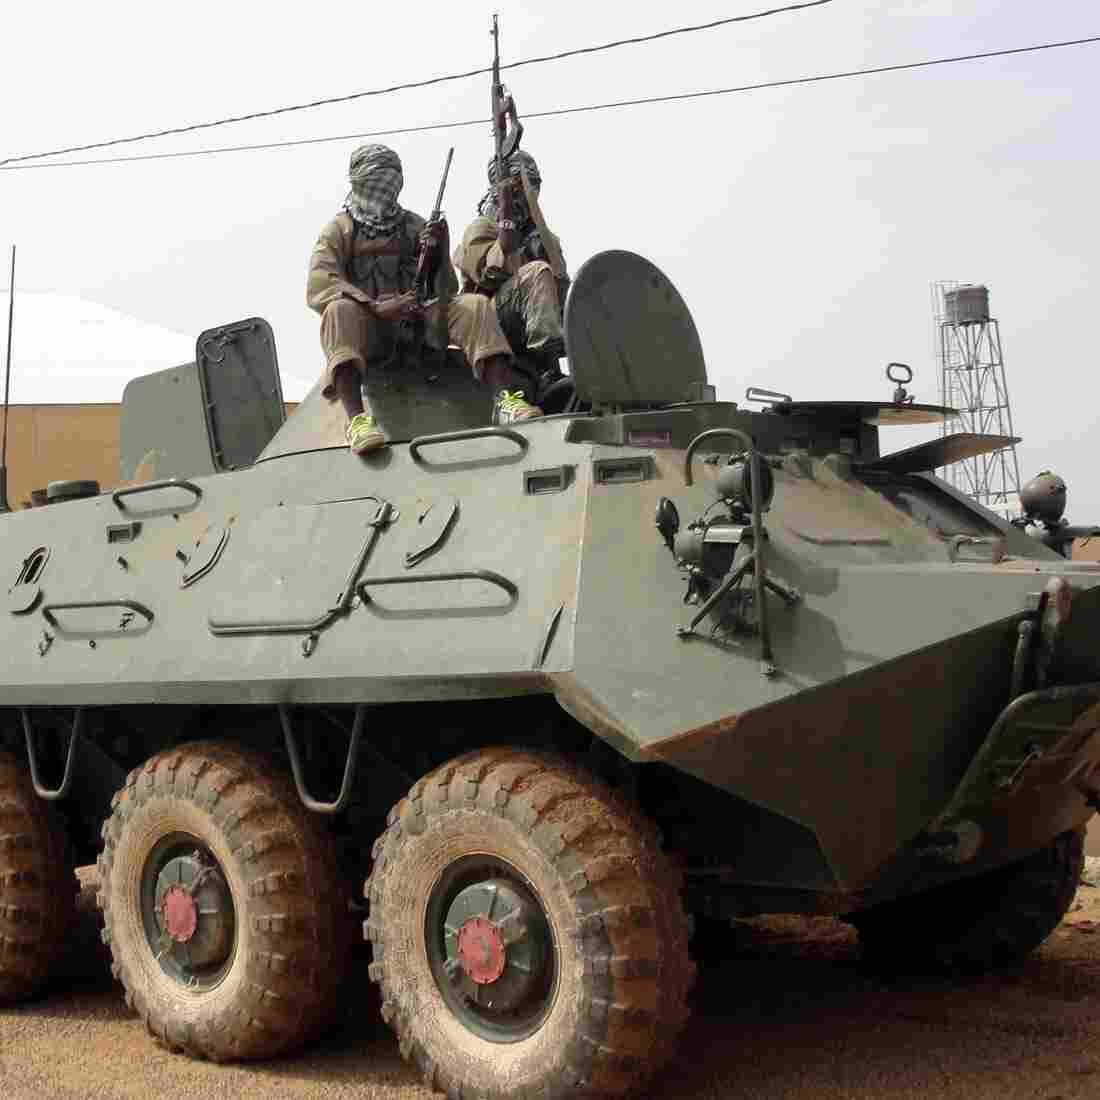 Islamist Rebels In Mali Inch Closer To Mauritania, Niger